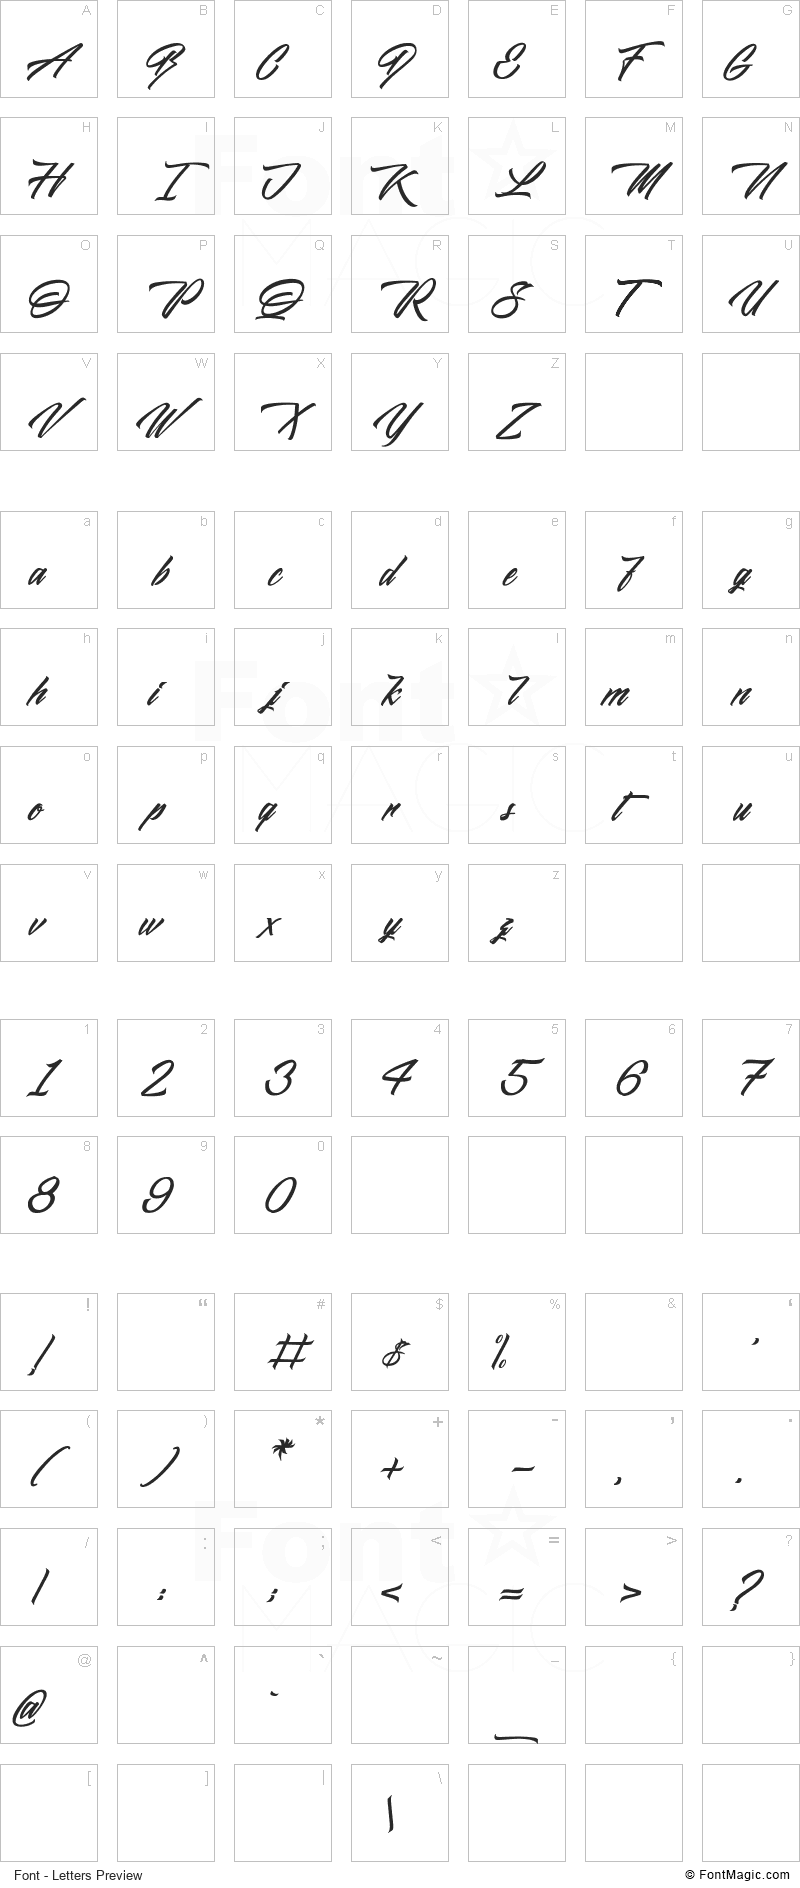 Midnight Street Font - All Latters Preview Chart